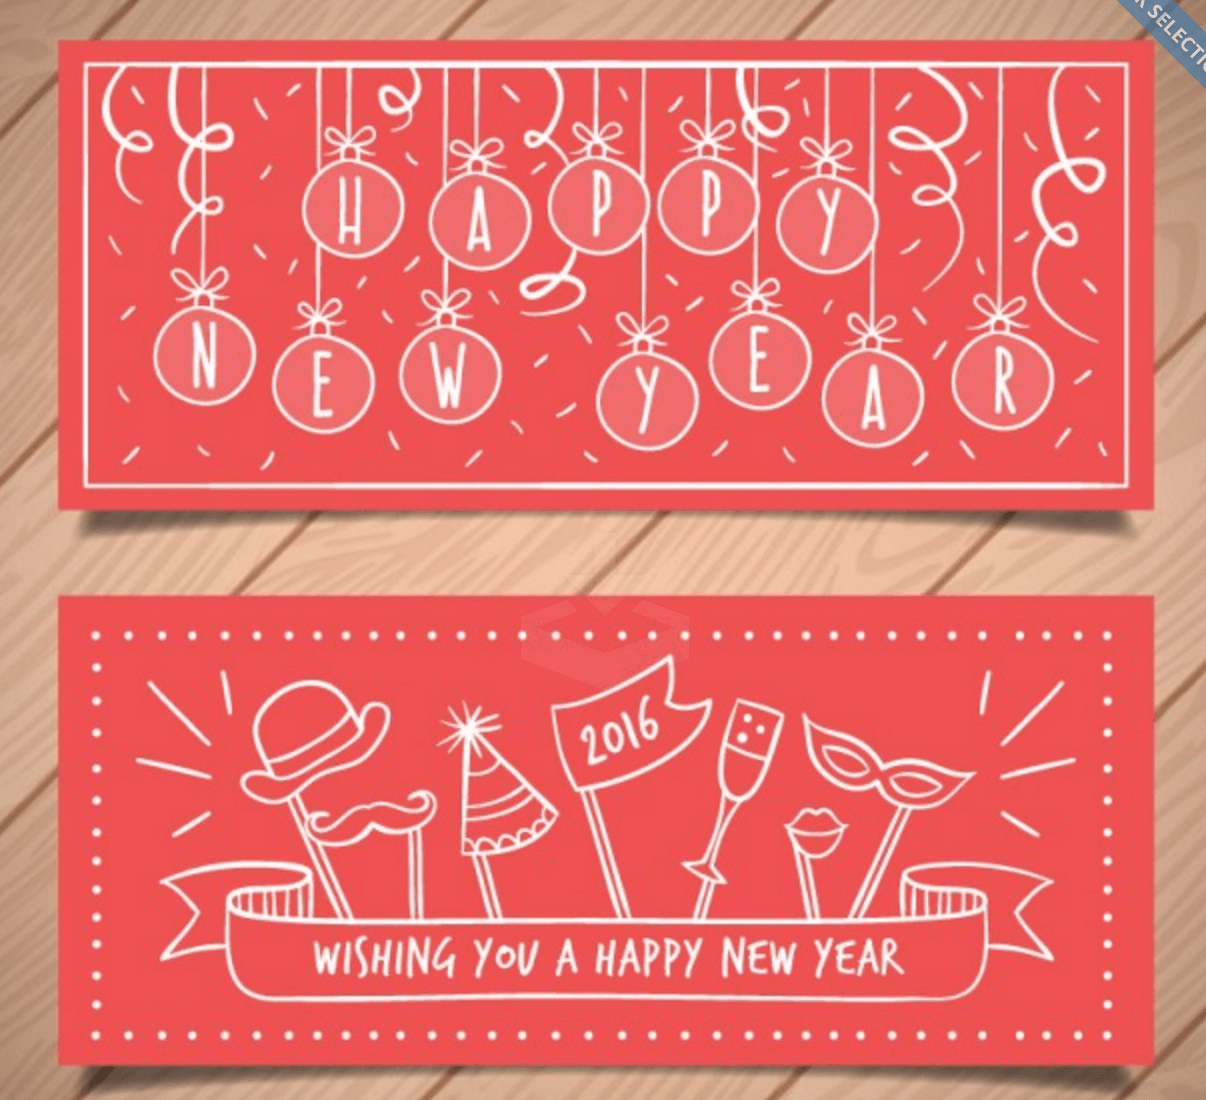 Banners for Wishing a Happy New Year